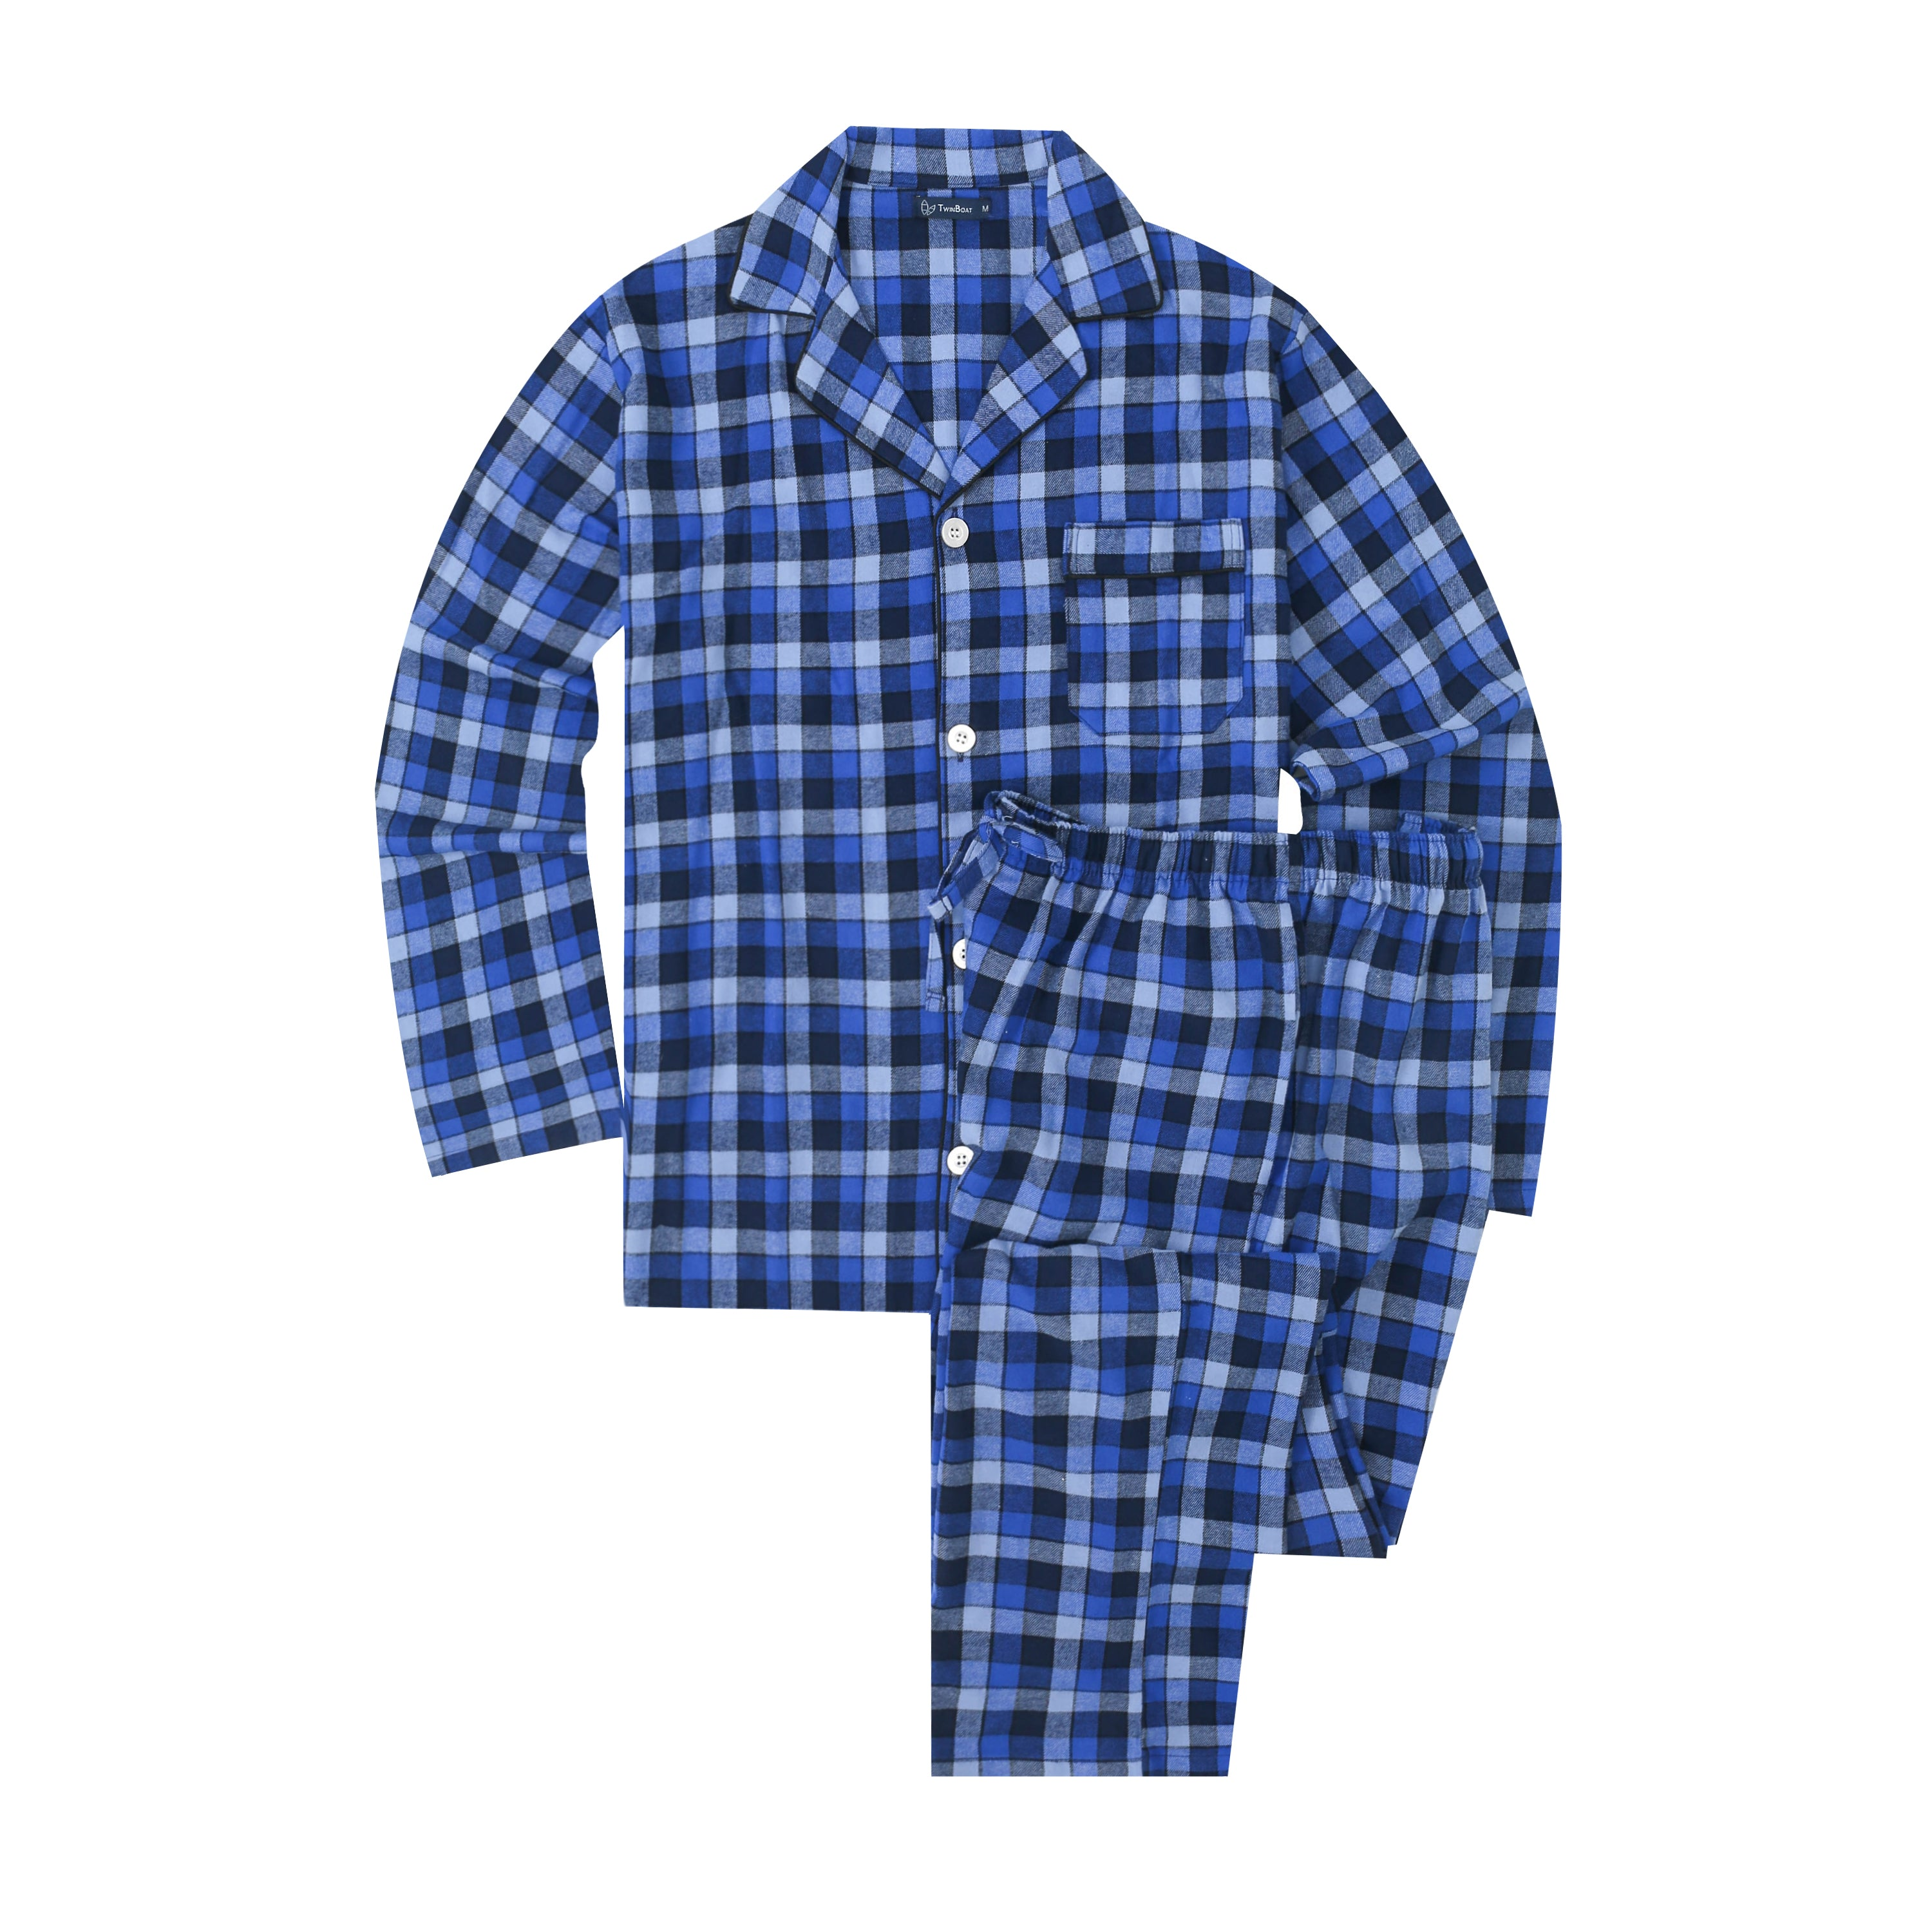 Mens Pajamas Set - 100% Cotton Flannel Pajamas for Men - Gradient Plaid Navy-Blue